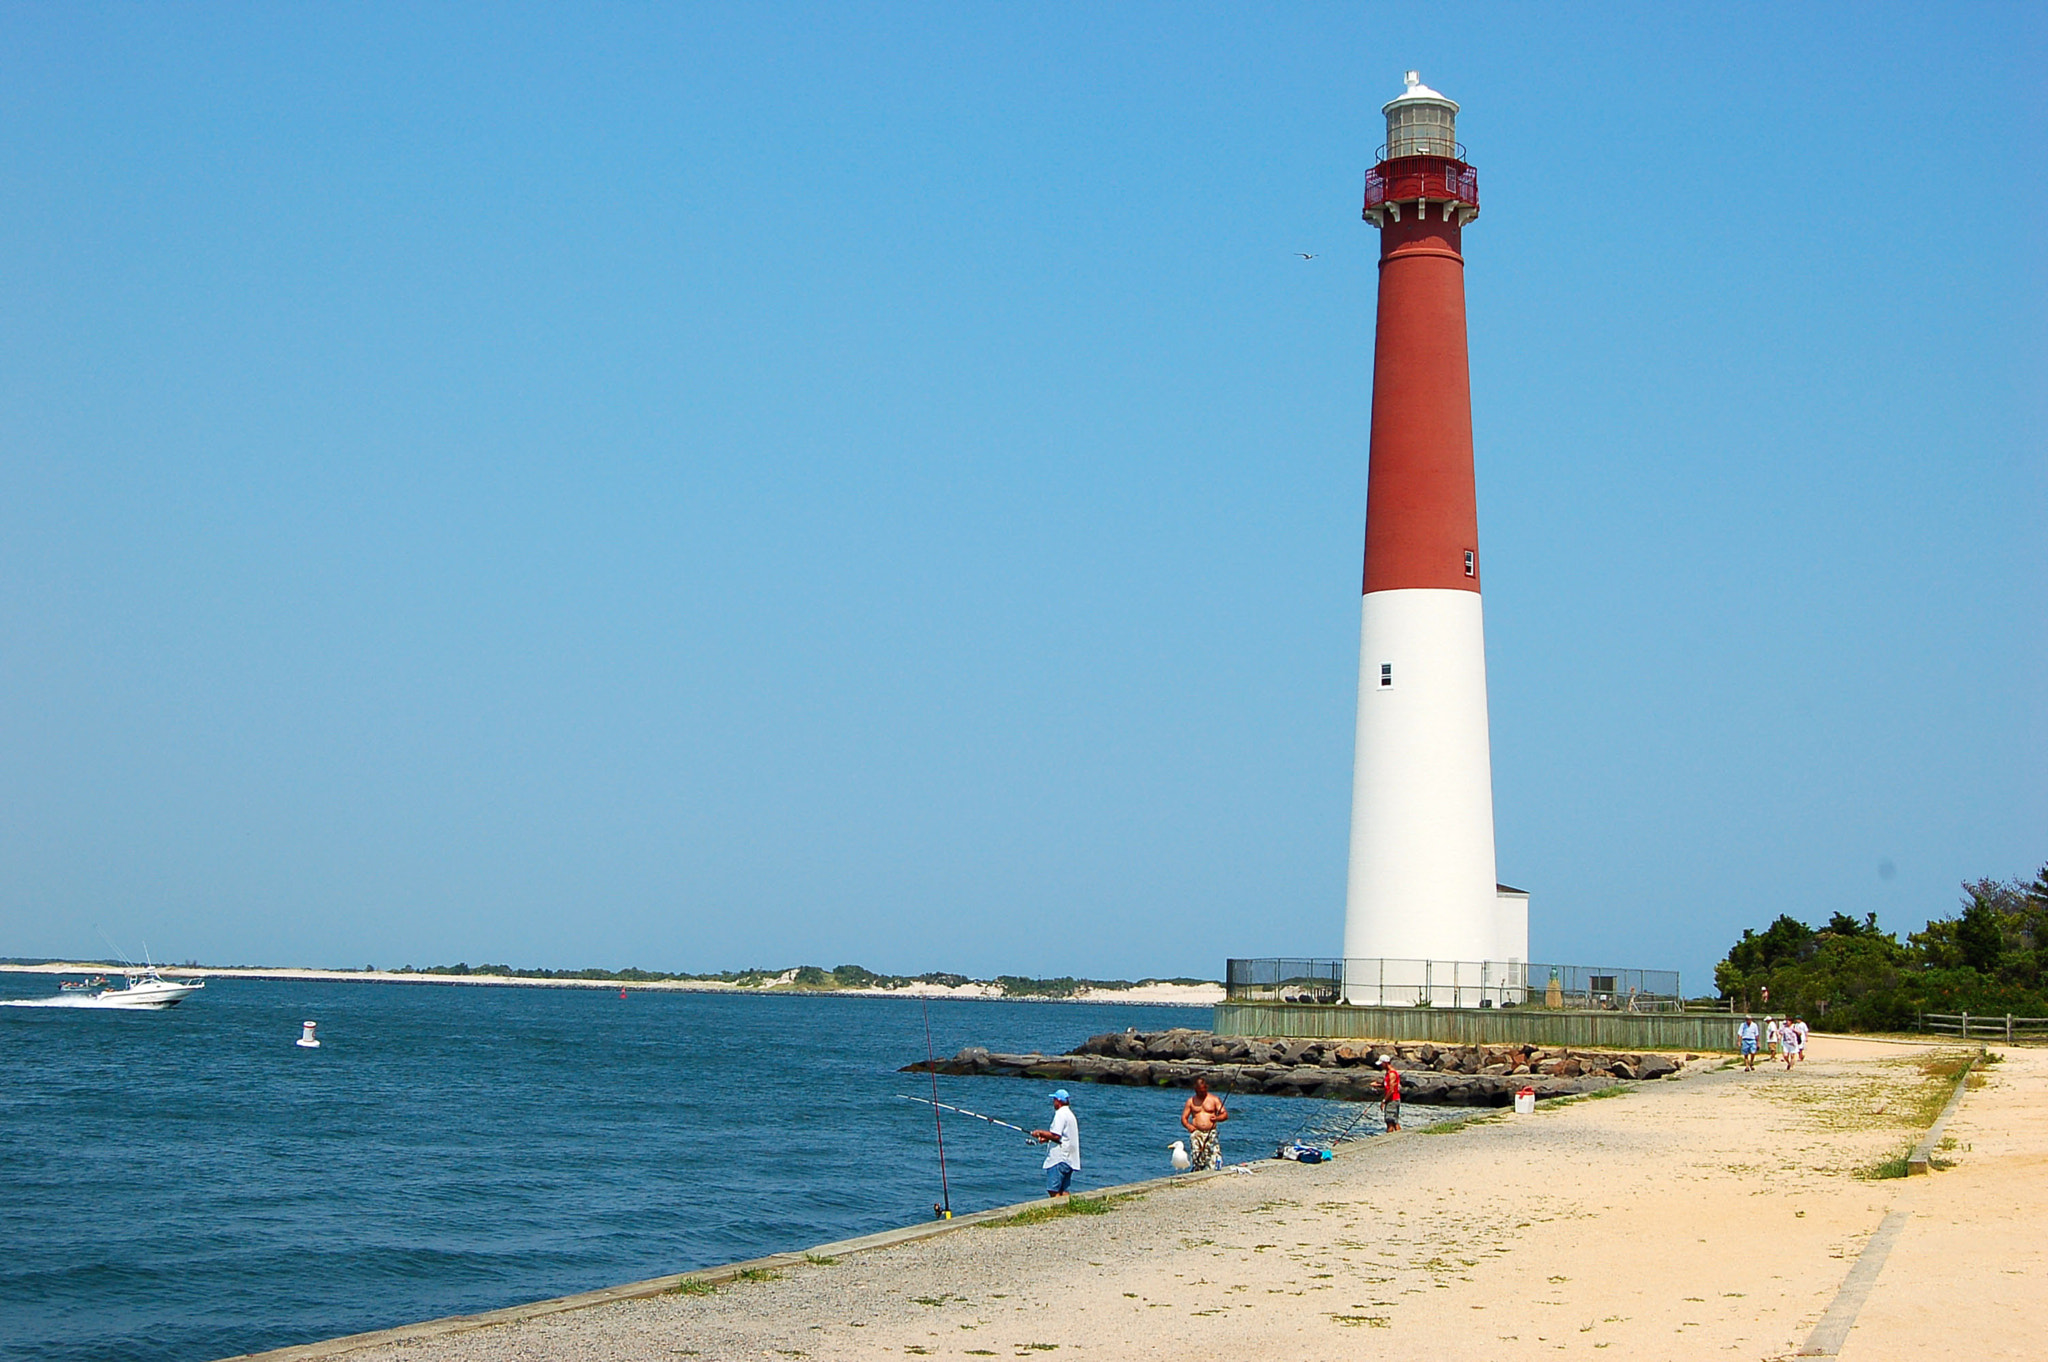 Photograph Barnegat Lighthouse, Long Beach Island, New Jersey by Scott Vrana on 500px